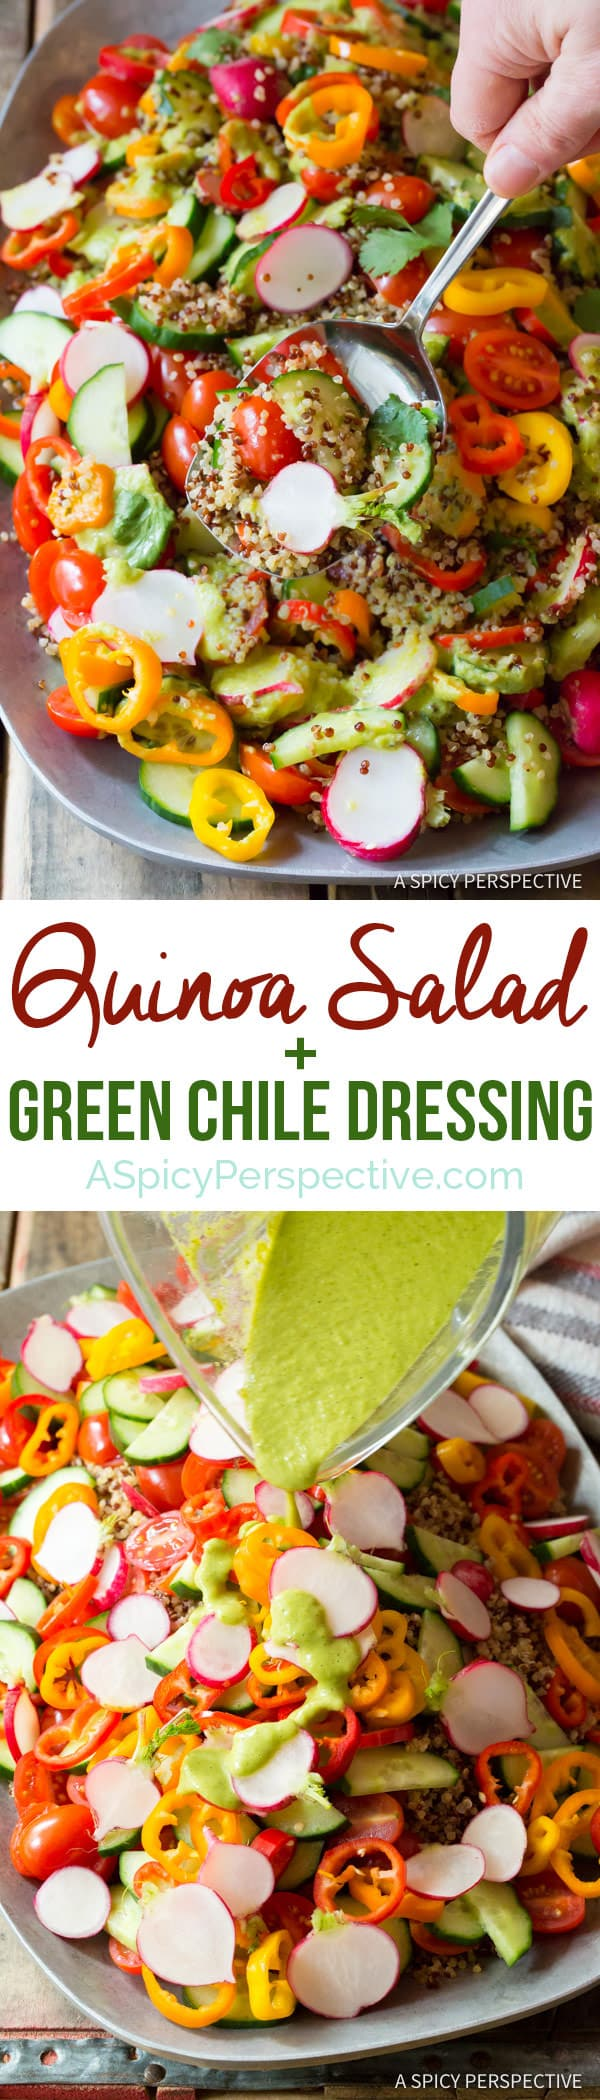 Hearty Quinoa Salad Recipe with Green Chile Dressing (Vegan & Gluten Free!) | ASpicyPerspective.com